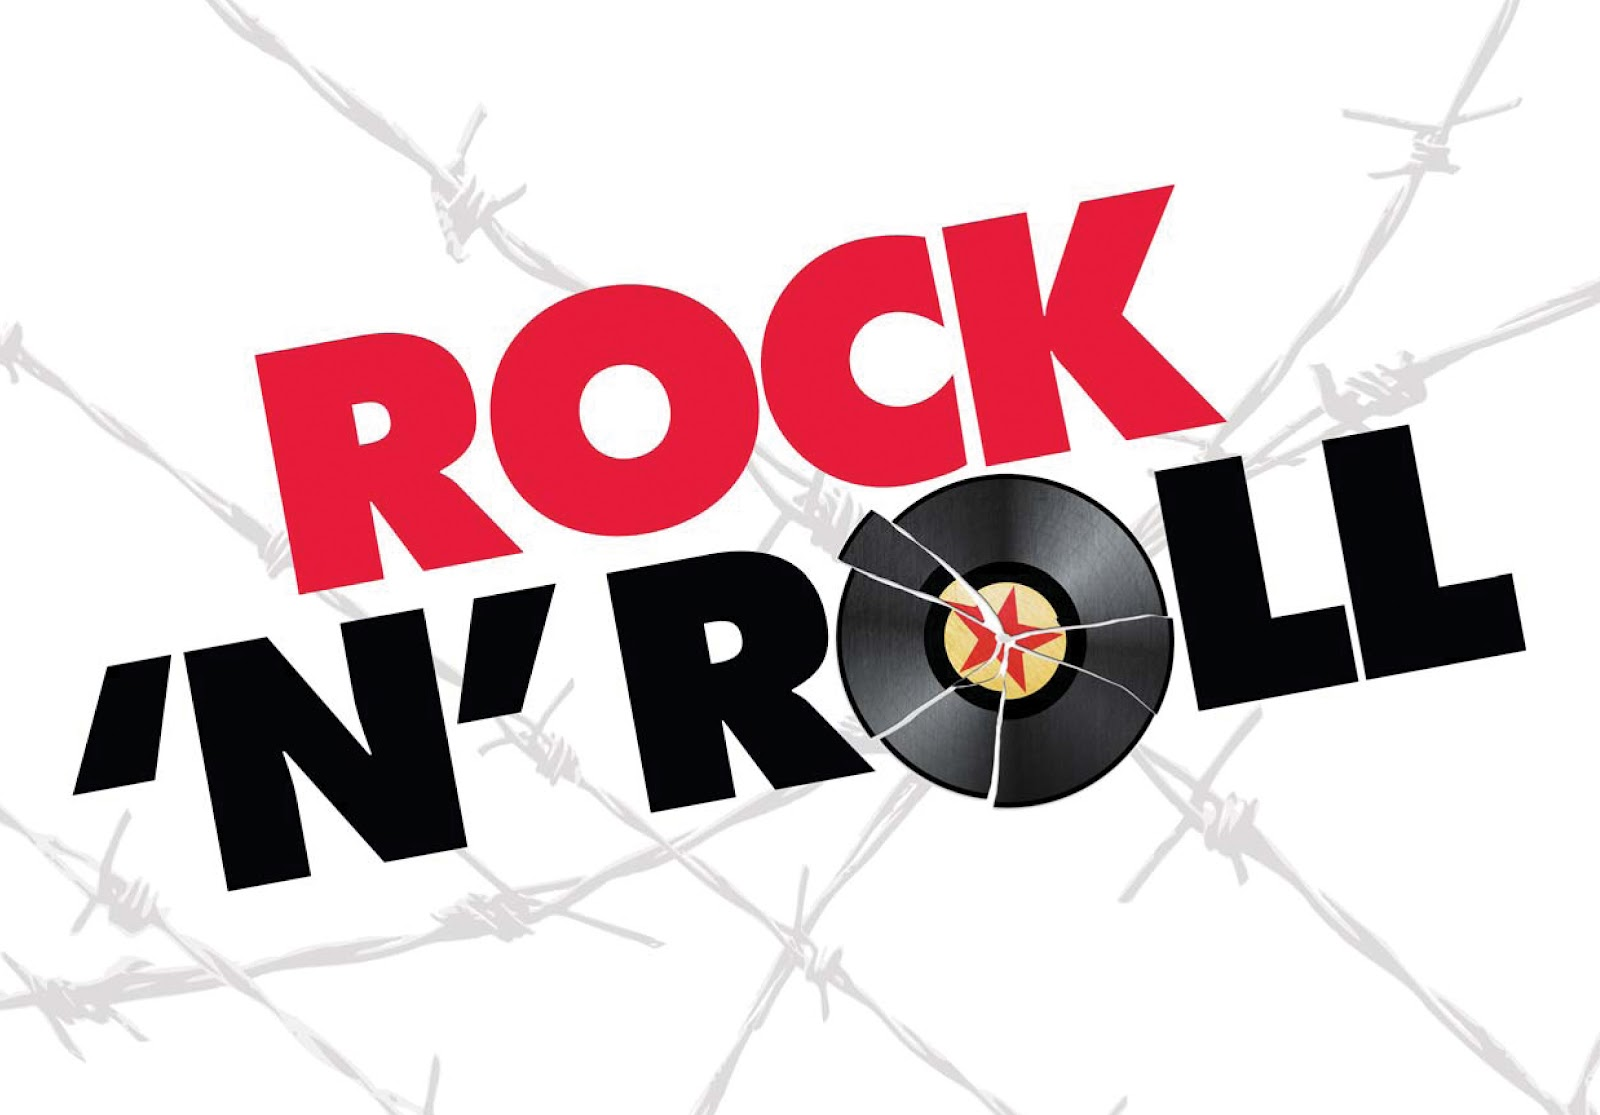 Rock And Roll Stock Vectors, Clipart and Illustrations